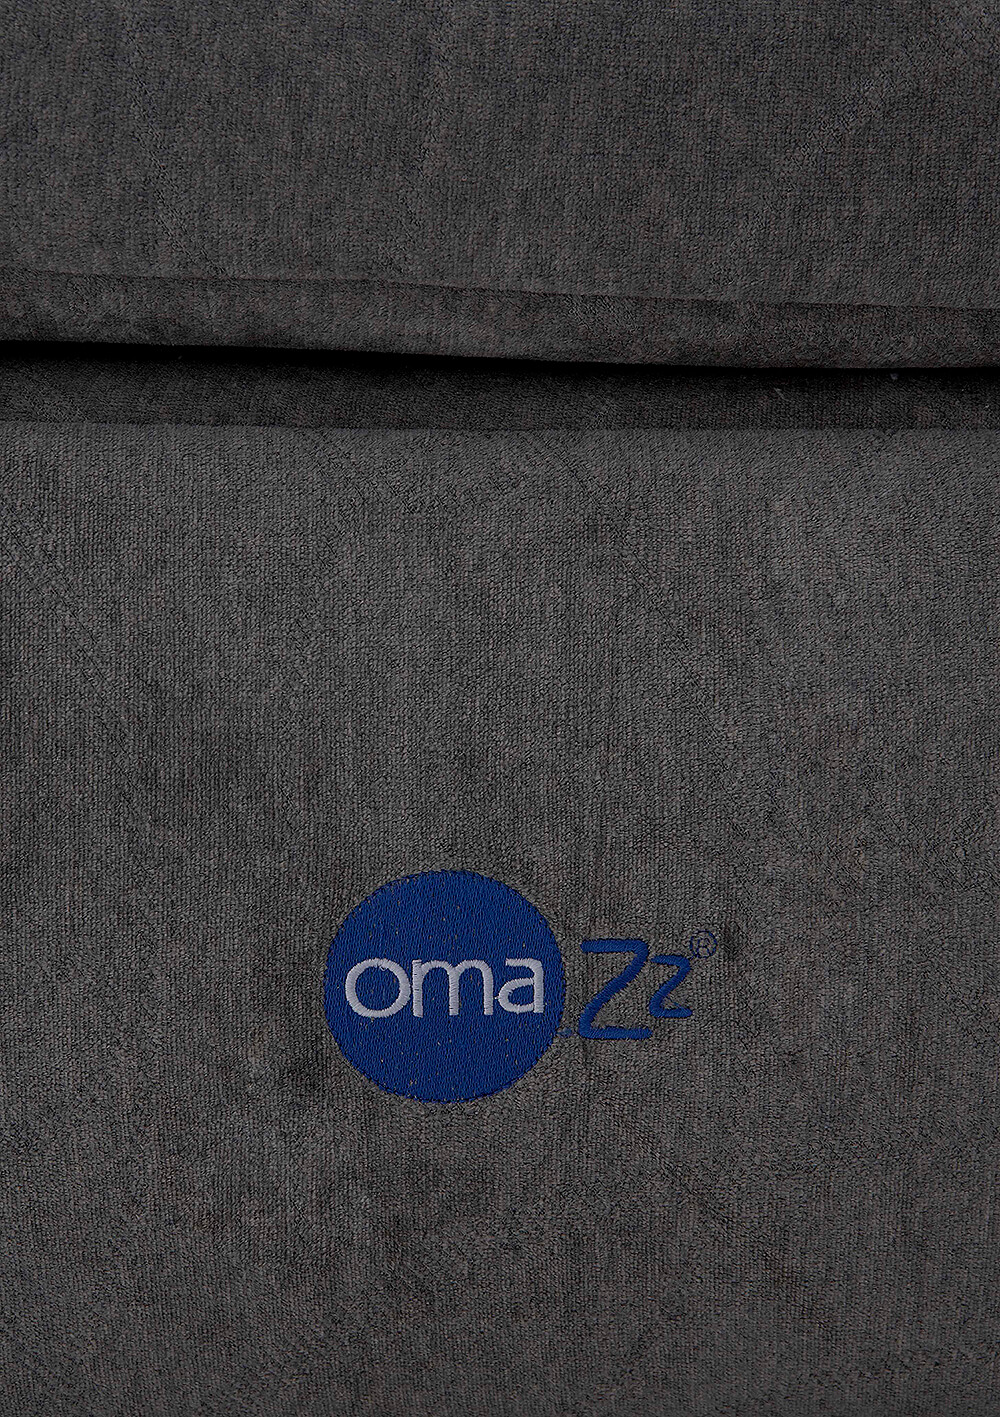 Omazz Mattress Zensational Deluxe